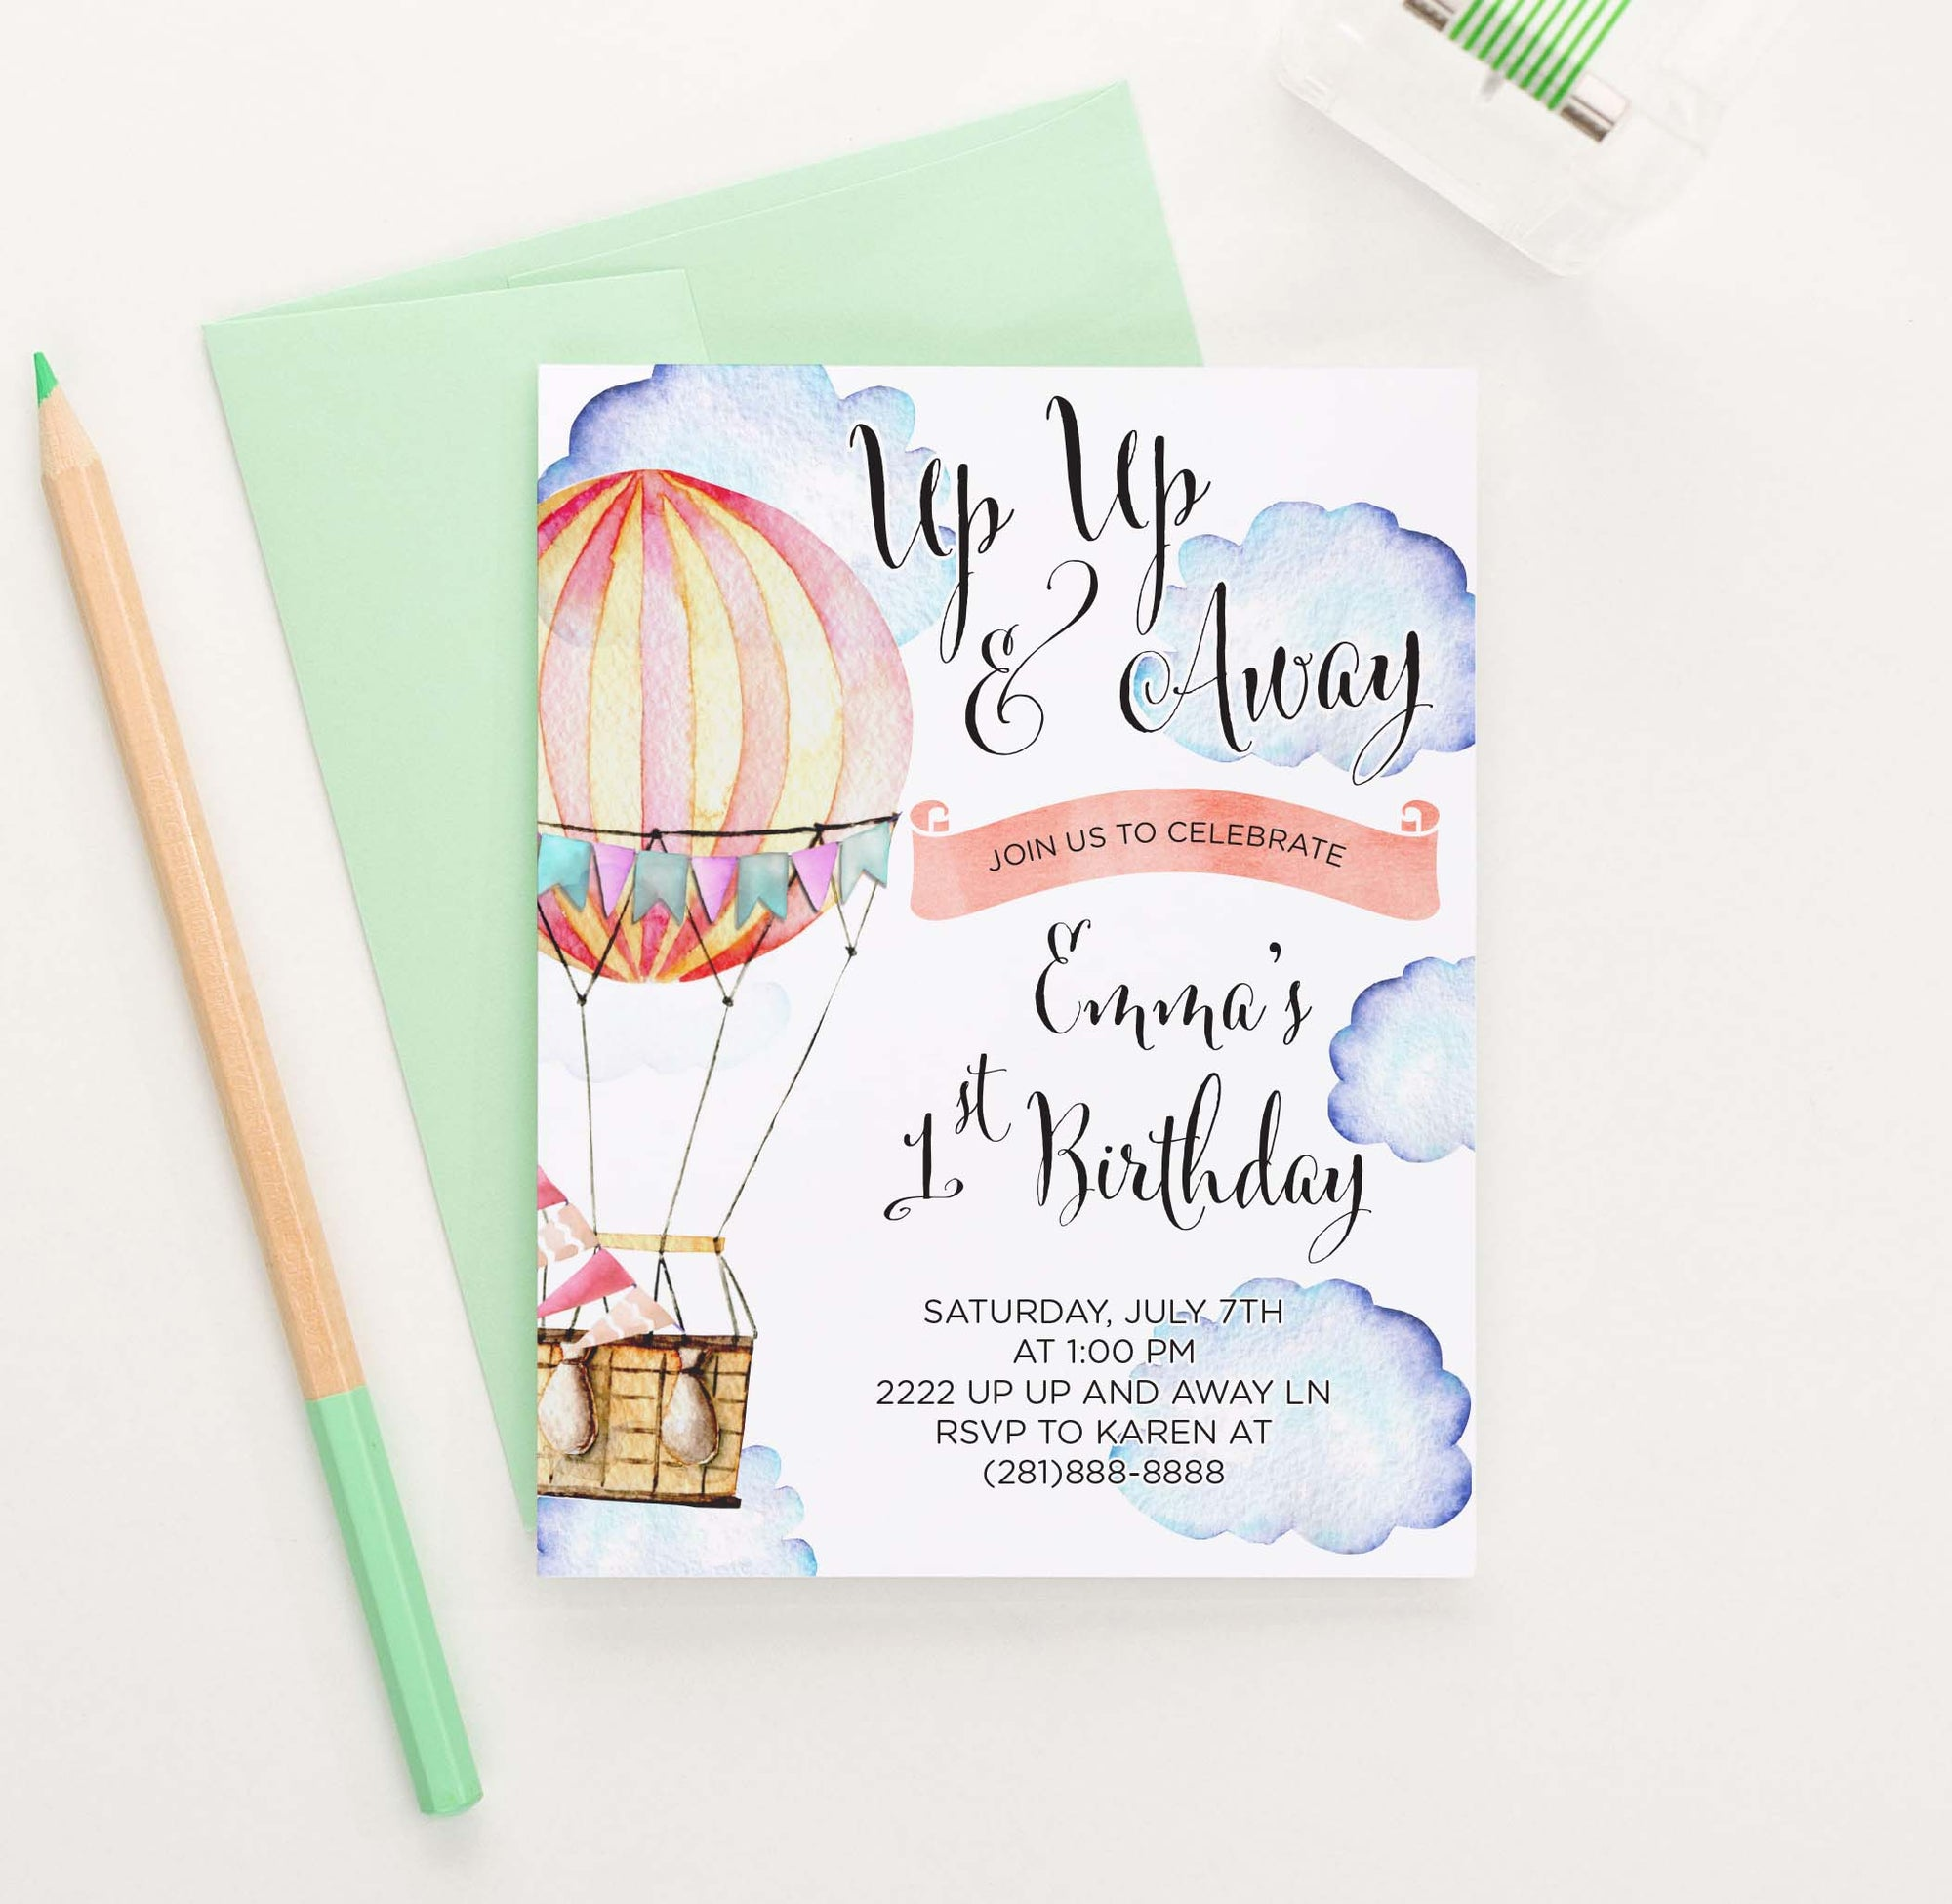 BI108 up up and away birthday party invites with hot air balloon adventure 1